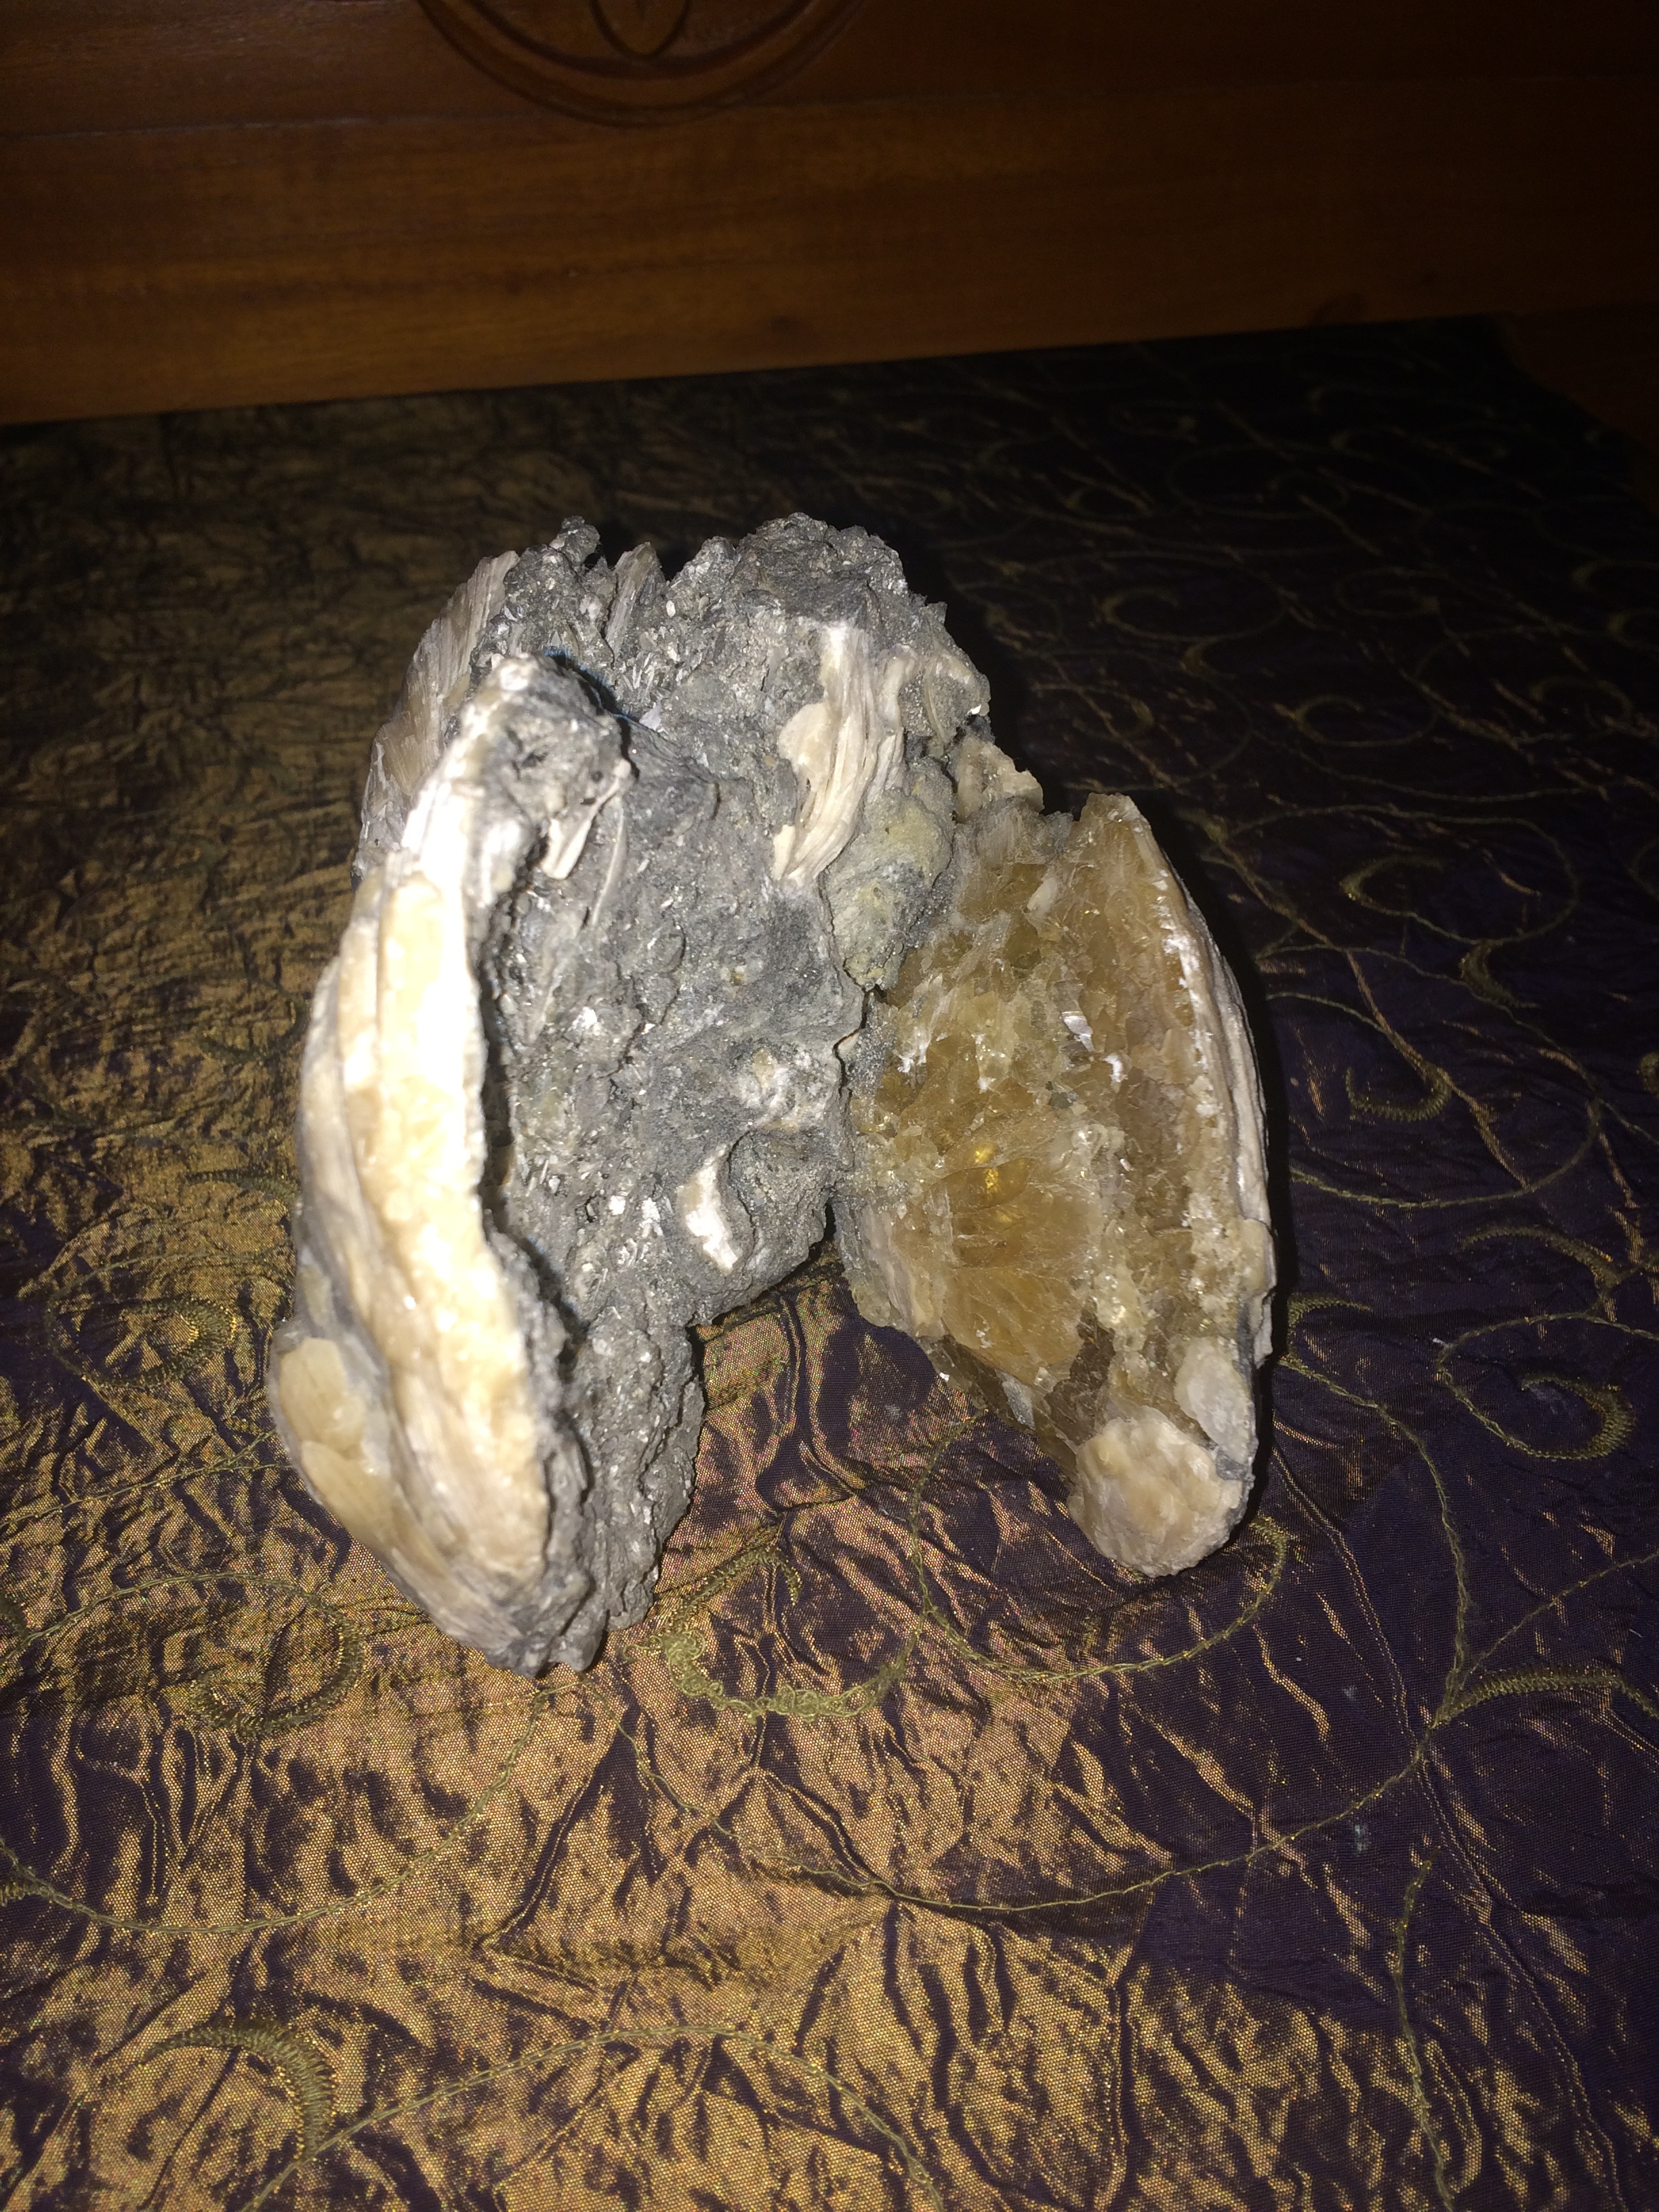 Fossilized Clam with Calcite Crystal from Florida SQ17 6x7x5 $350.00